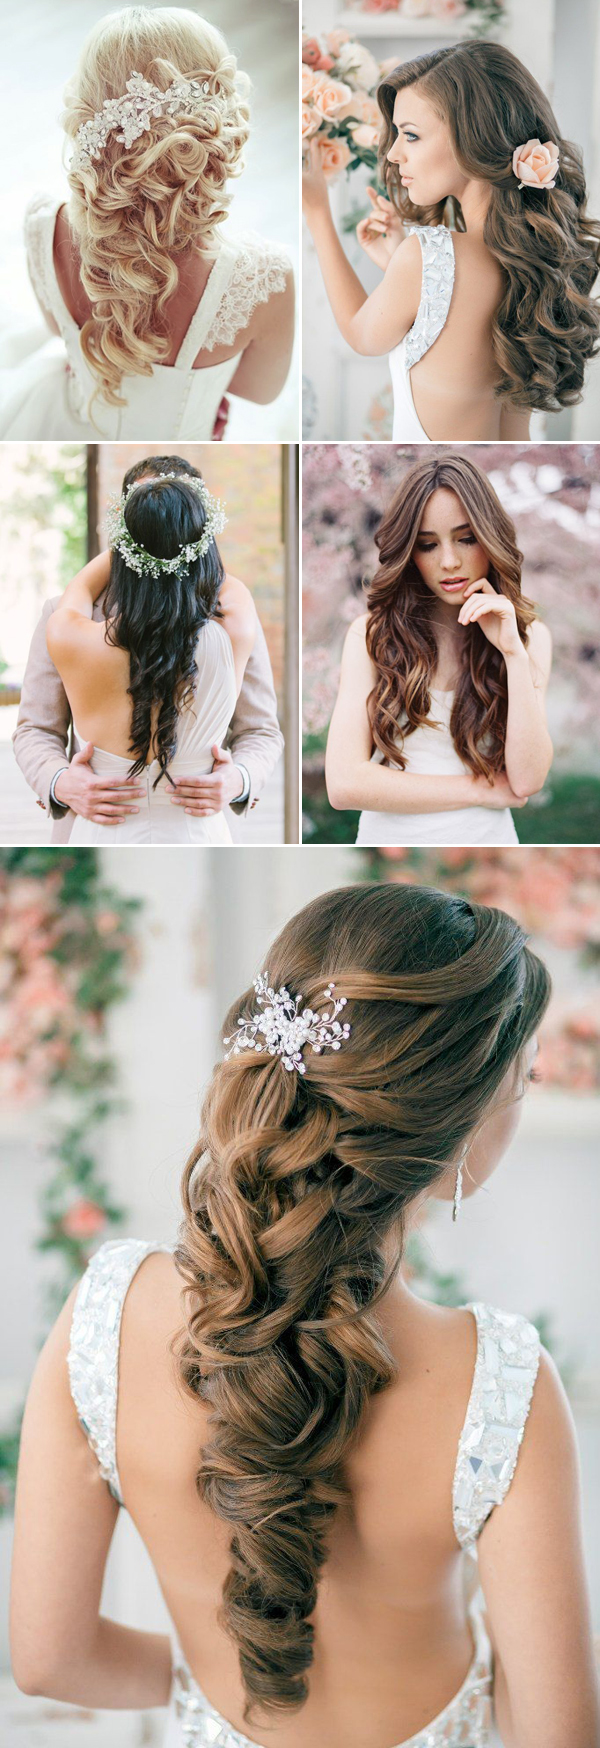 bridal hair 01-loosedown